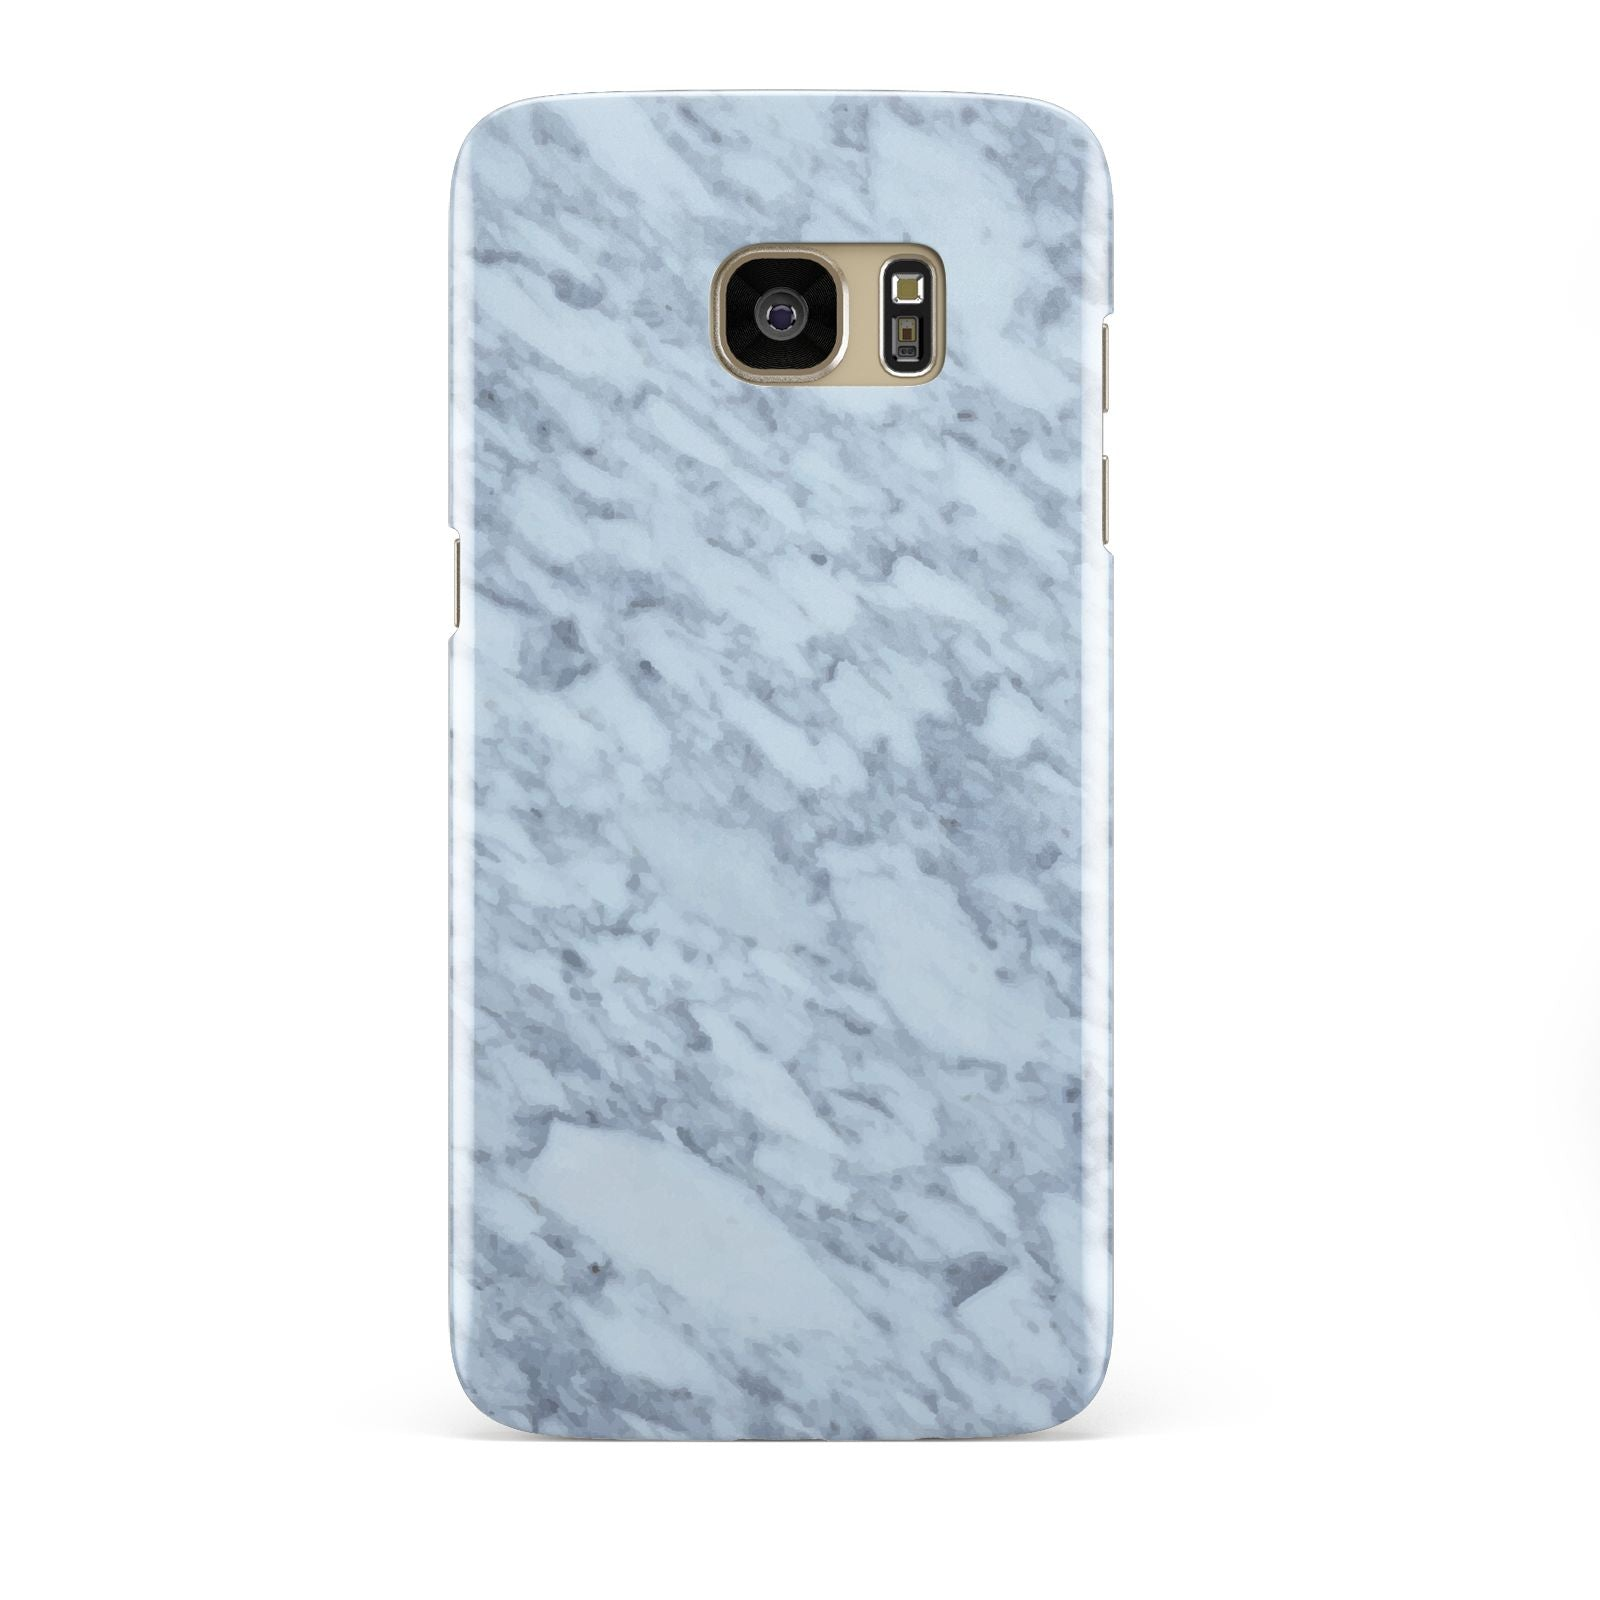 Faux Marble Grey 2 Samsung Galaxy S7 Edge Case